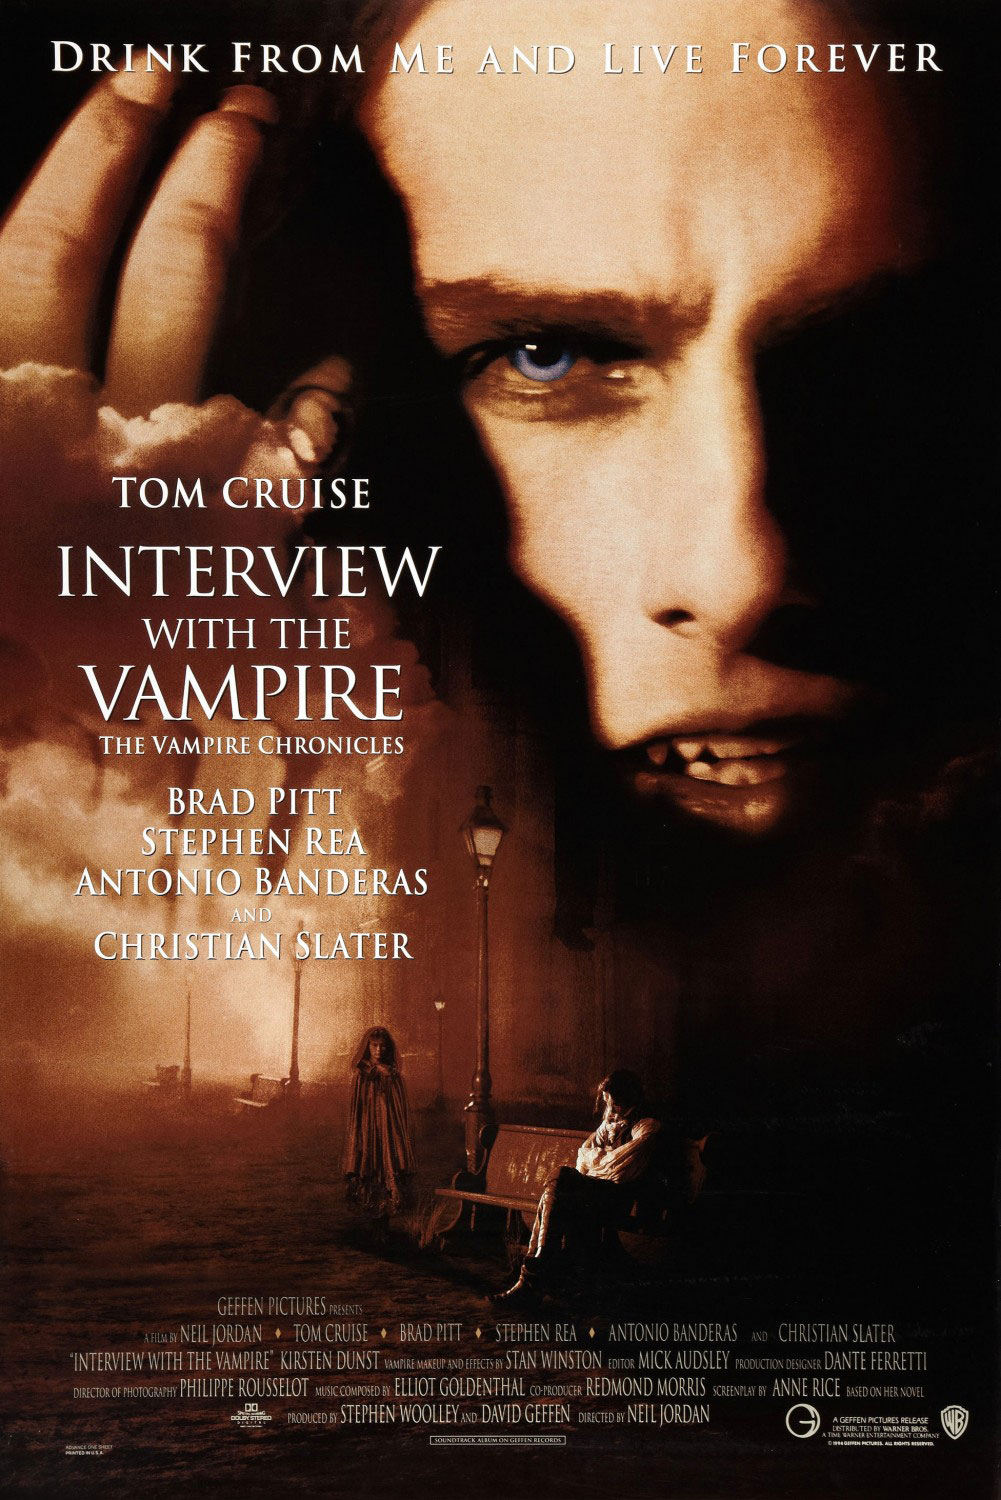 Interview with the Vampire movie poster